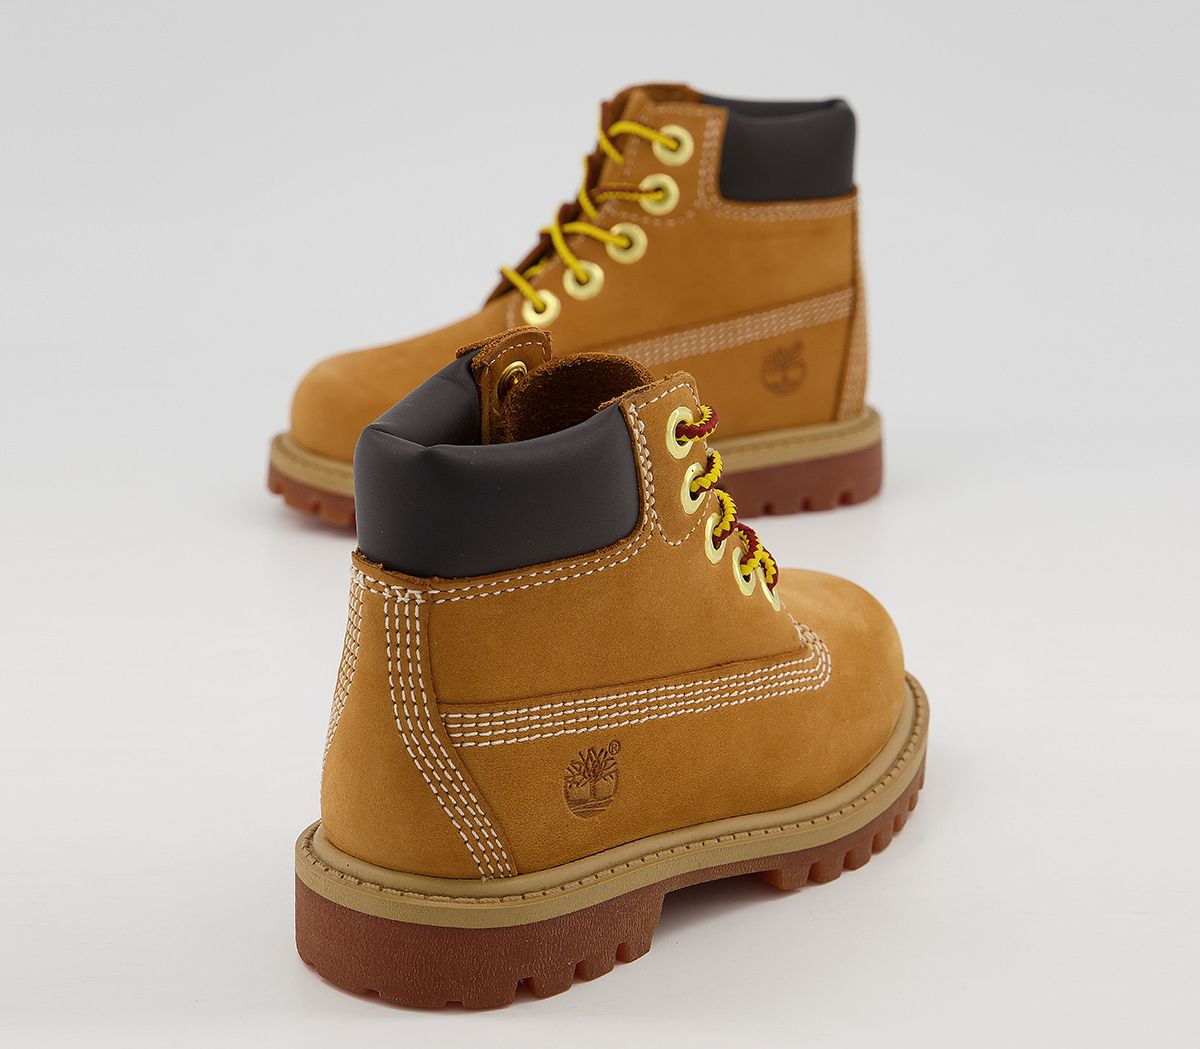 Details about Kids Timberland 6 Inch Classic Boots Infant Wheat Nubuck Kids